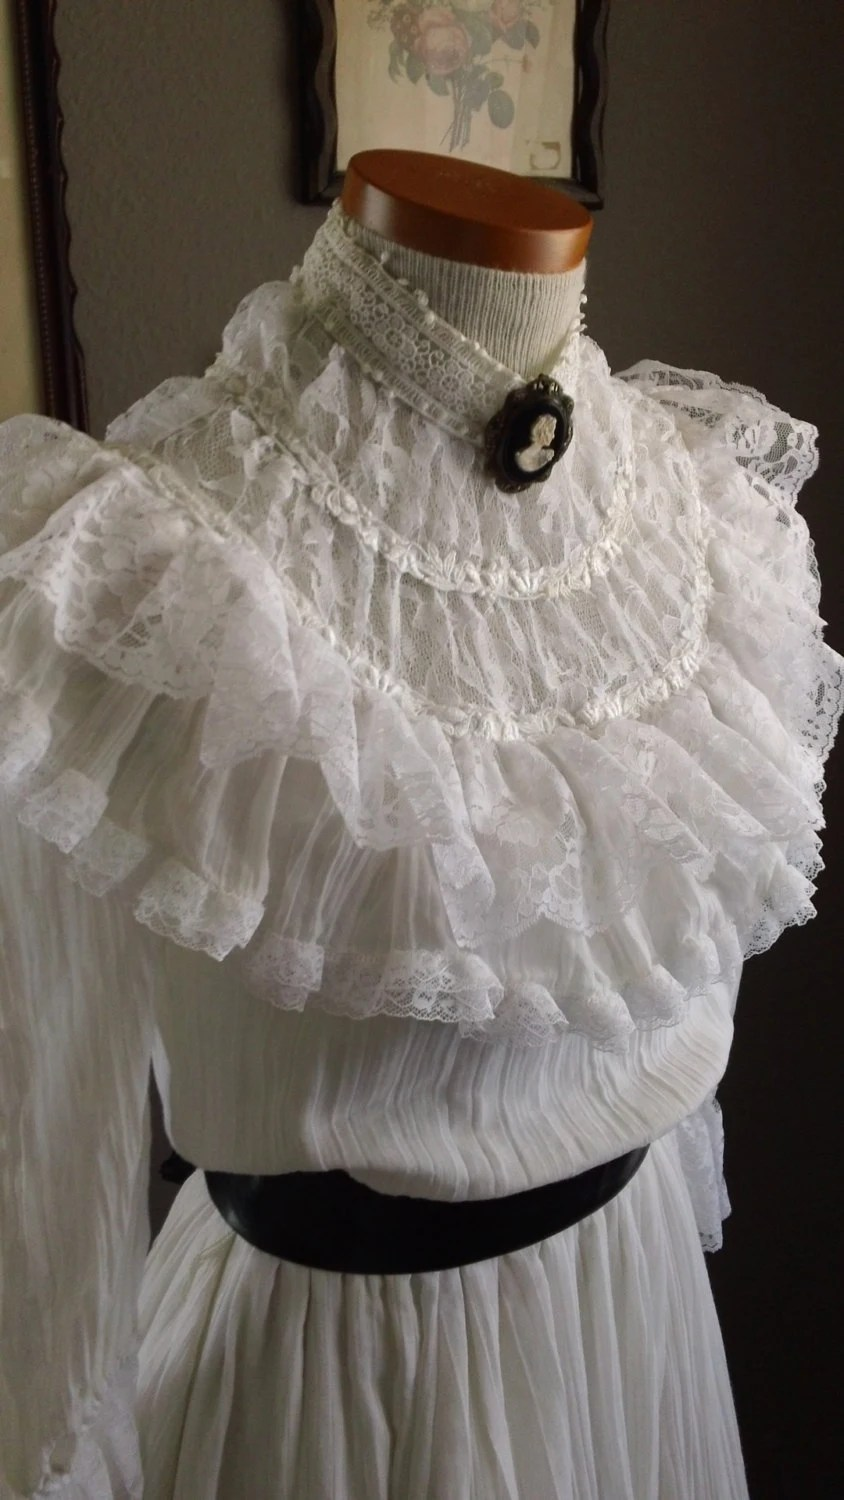 70s Gunne Sax White Gauze Cotton and Lace High Neck Victorian